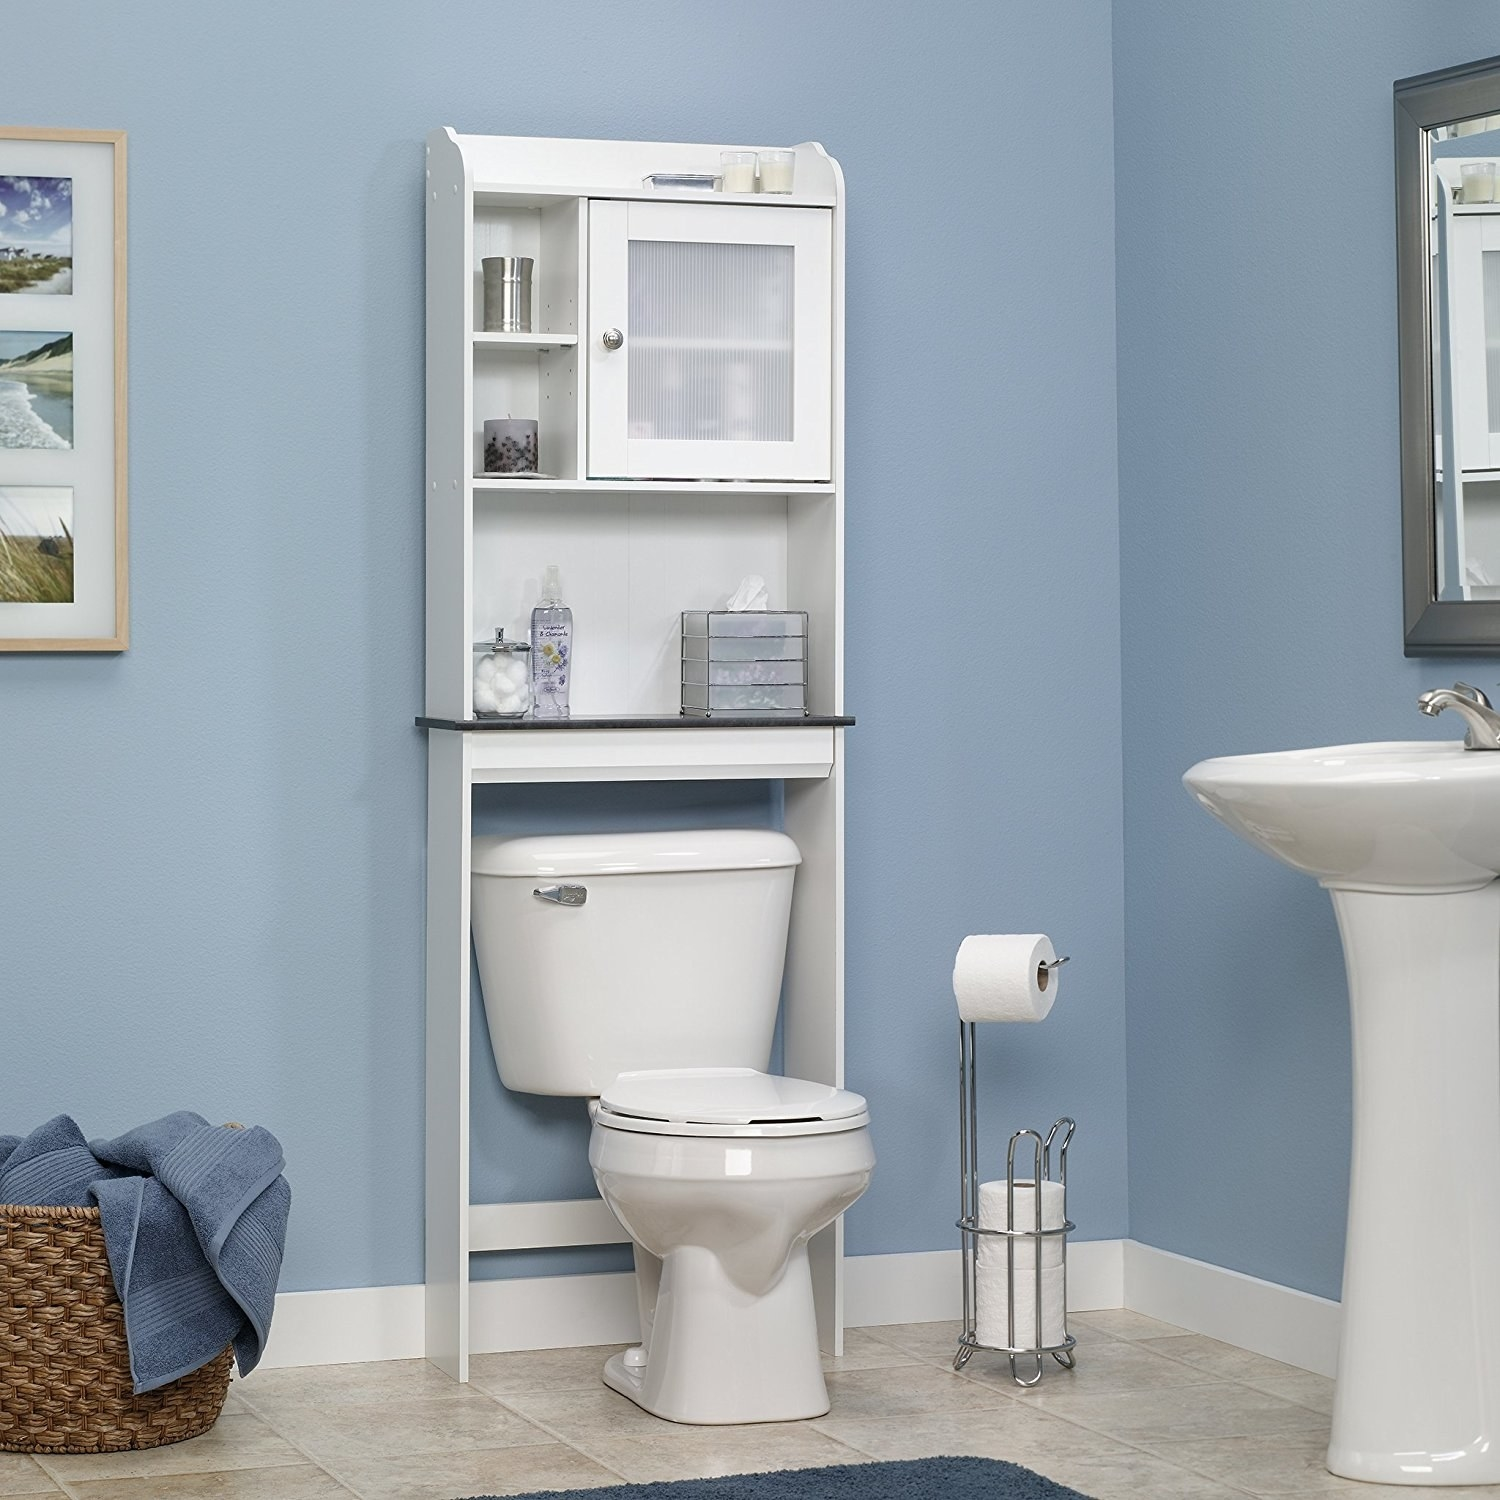 A shelf slid behind a toilet with a main counter above the toilet tank, which sits below medicine cabinet on the right and two shelves on the left. There is also shelf-space on the top of the cabinet